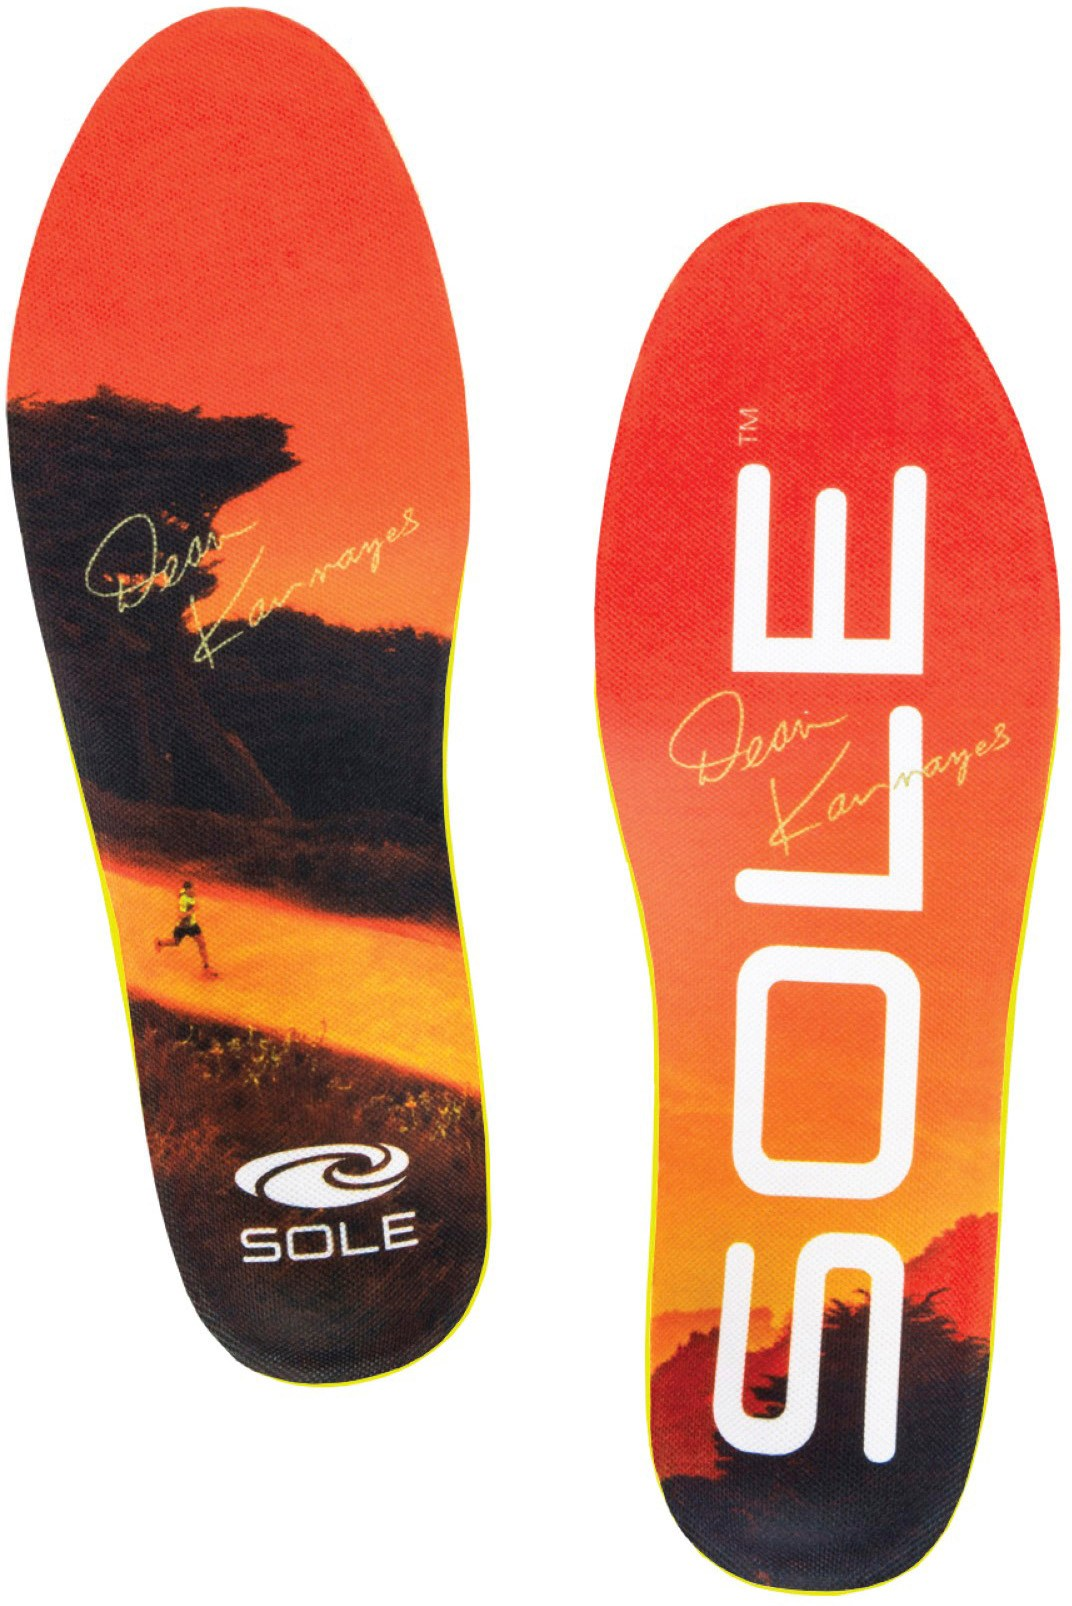 SOLE Performance Medium Insoles